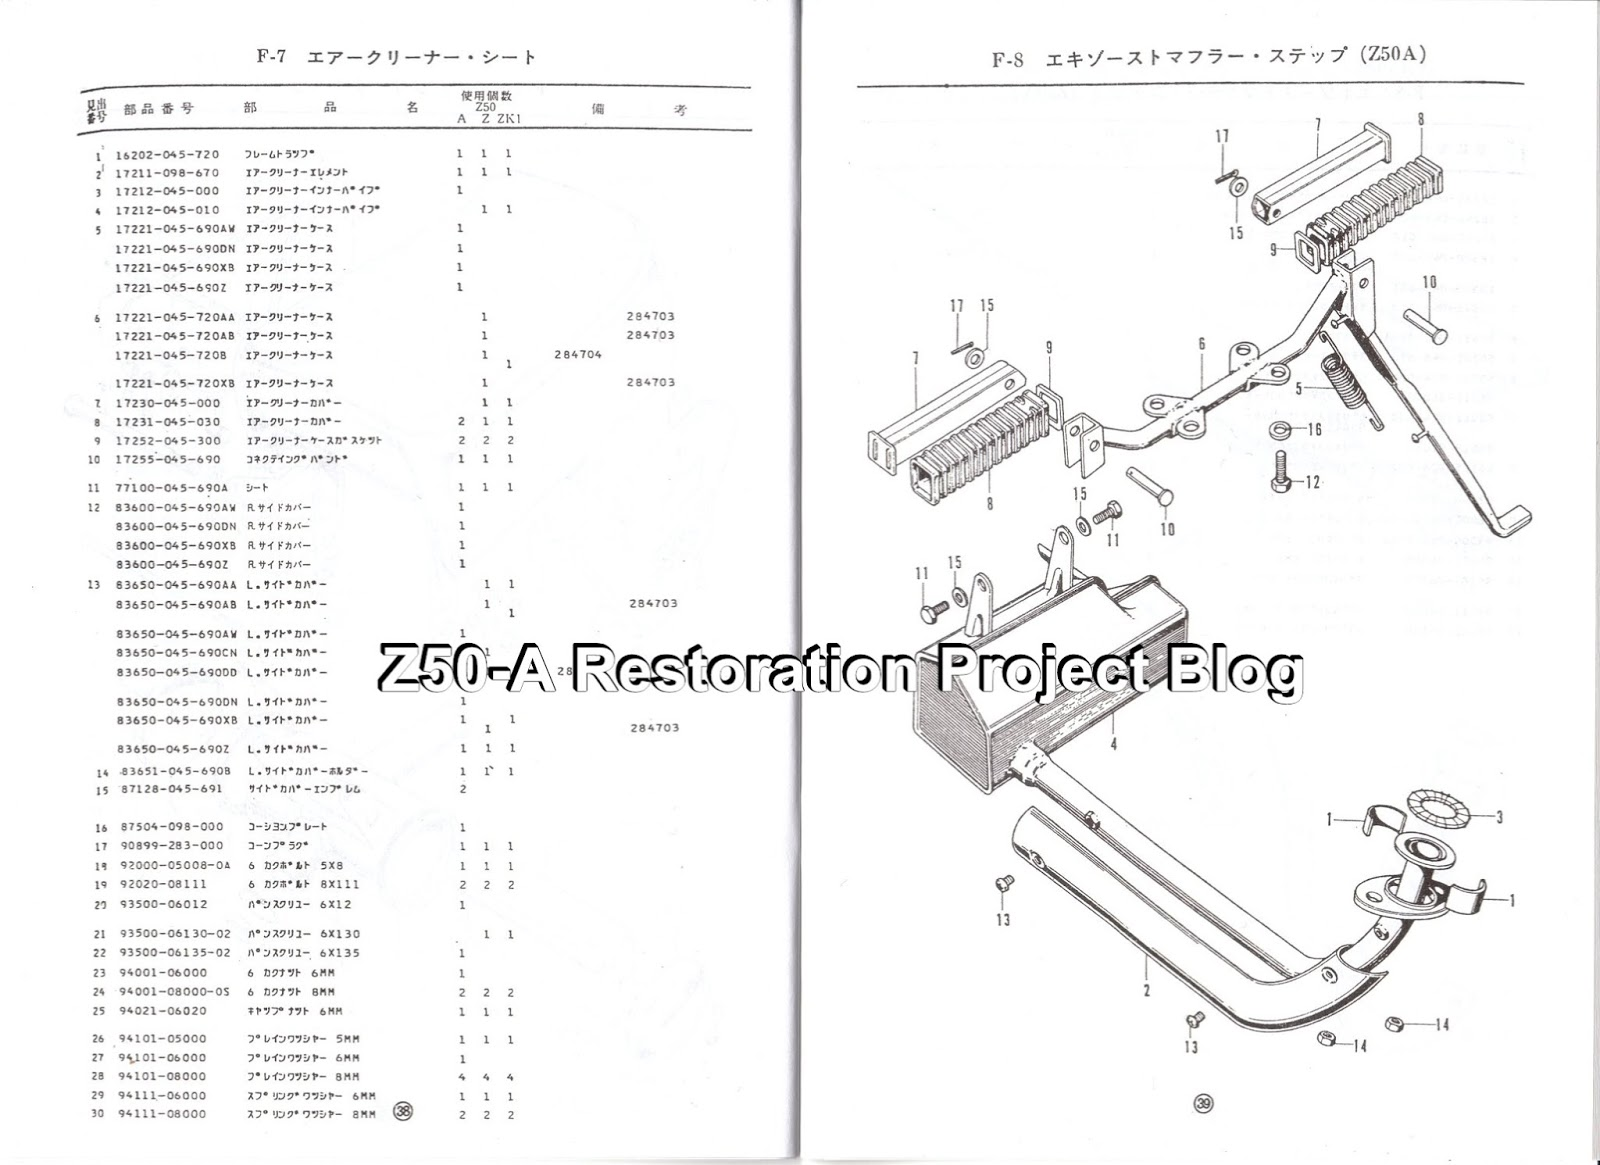 Honda Parts Diagram Manual | Wiring Diagram Database on 2003 civic wiring diagram, gx620 wiring diagram, gxv620 wiring diagram, gx 150 wiring diagram, honda gx390 governor diagram, honda gx140 governor linkage diagram, honda gx wiring-diagram, honda gx160 wiring, honda gx340 parts diagram, governor spring diagram, honda gx270 carburetor diagram, gxv390 wiring diagram, honda gx120 engine diagram, honda gx200 diagram spring, honda 390 wiring-diagram, stihl ts400 wiring diagram, gx340 wiring diagram, gx390 parts diagram,